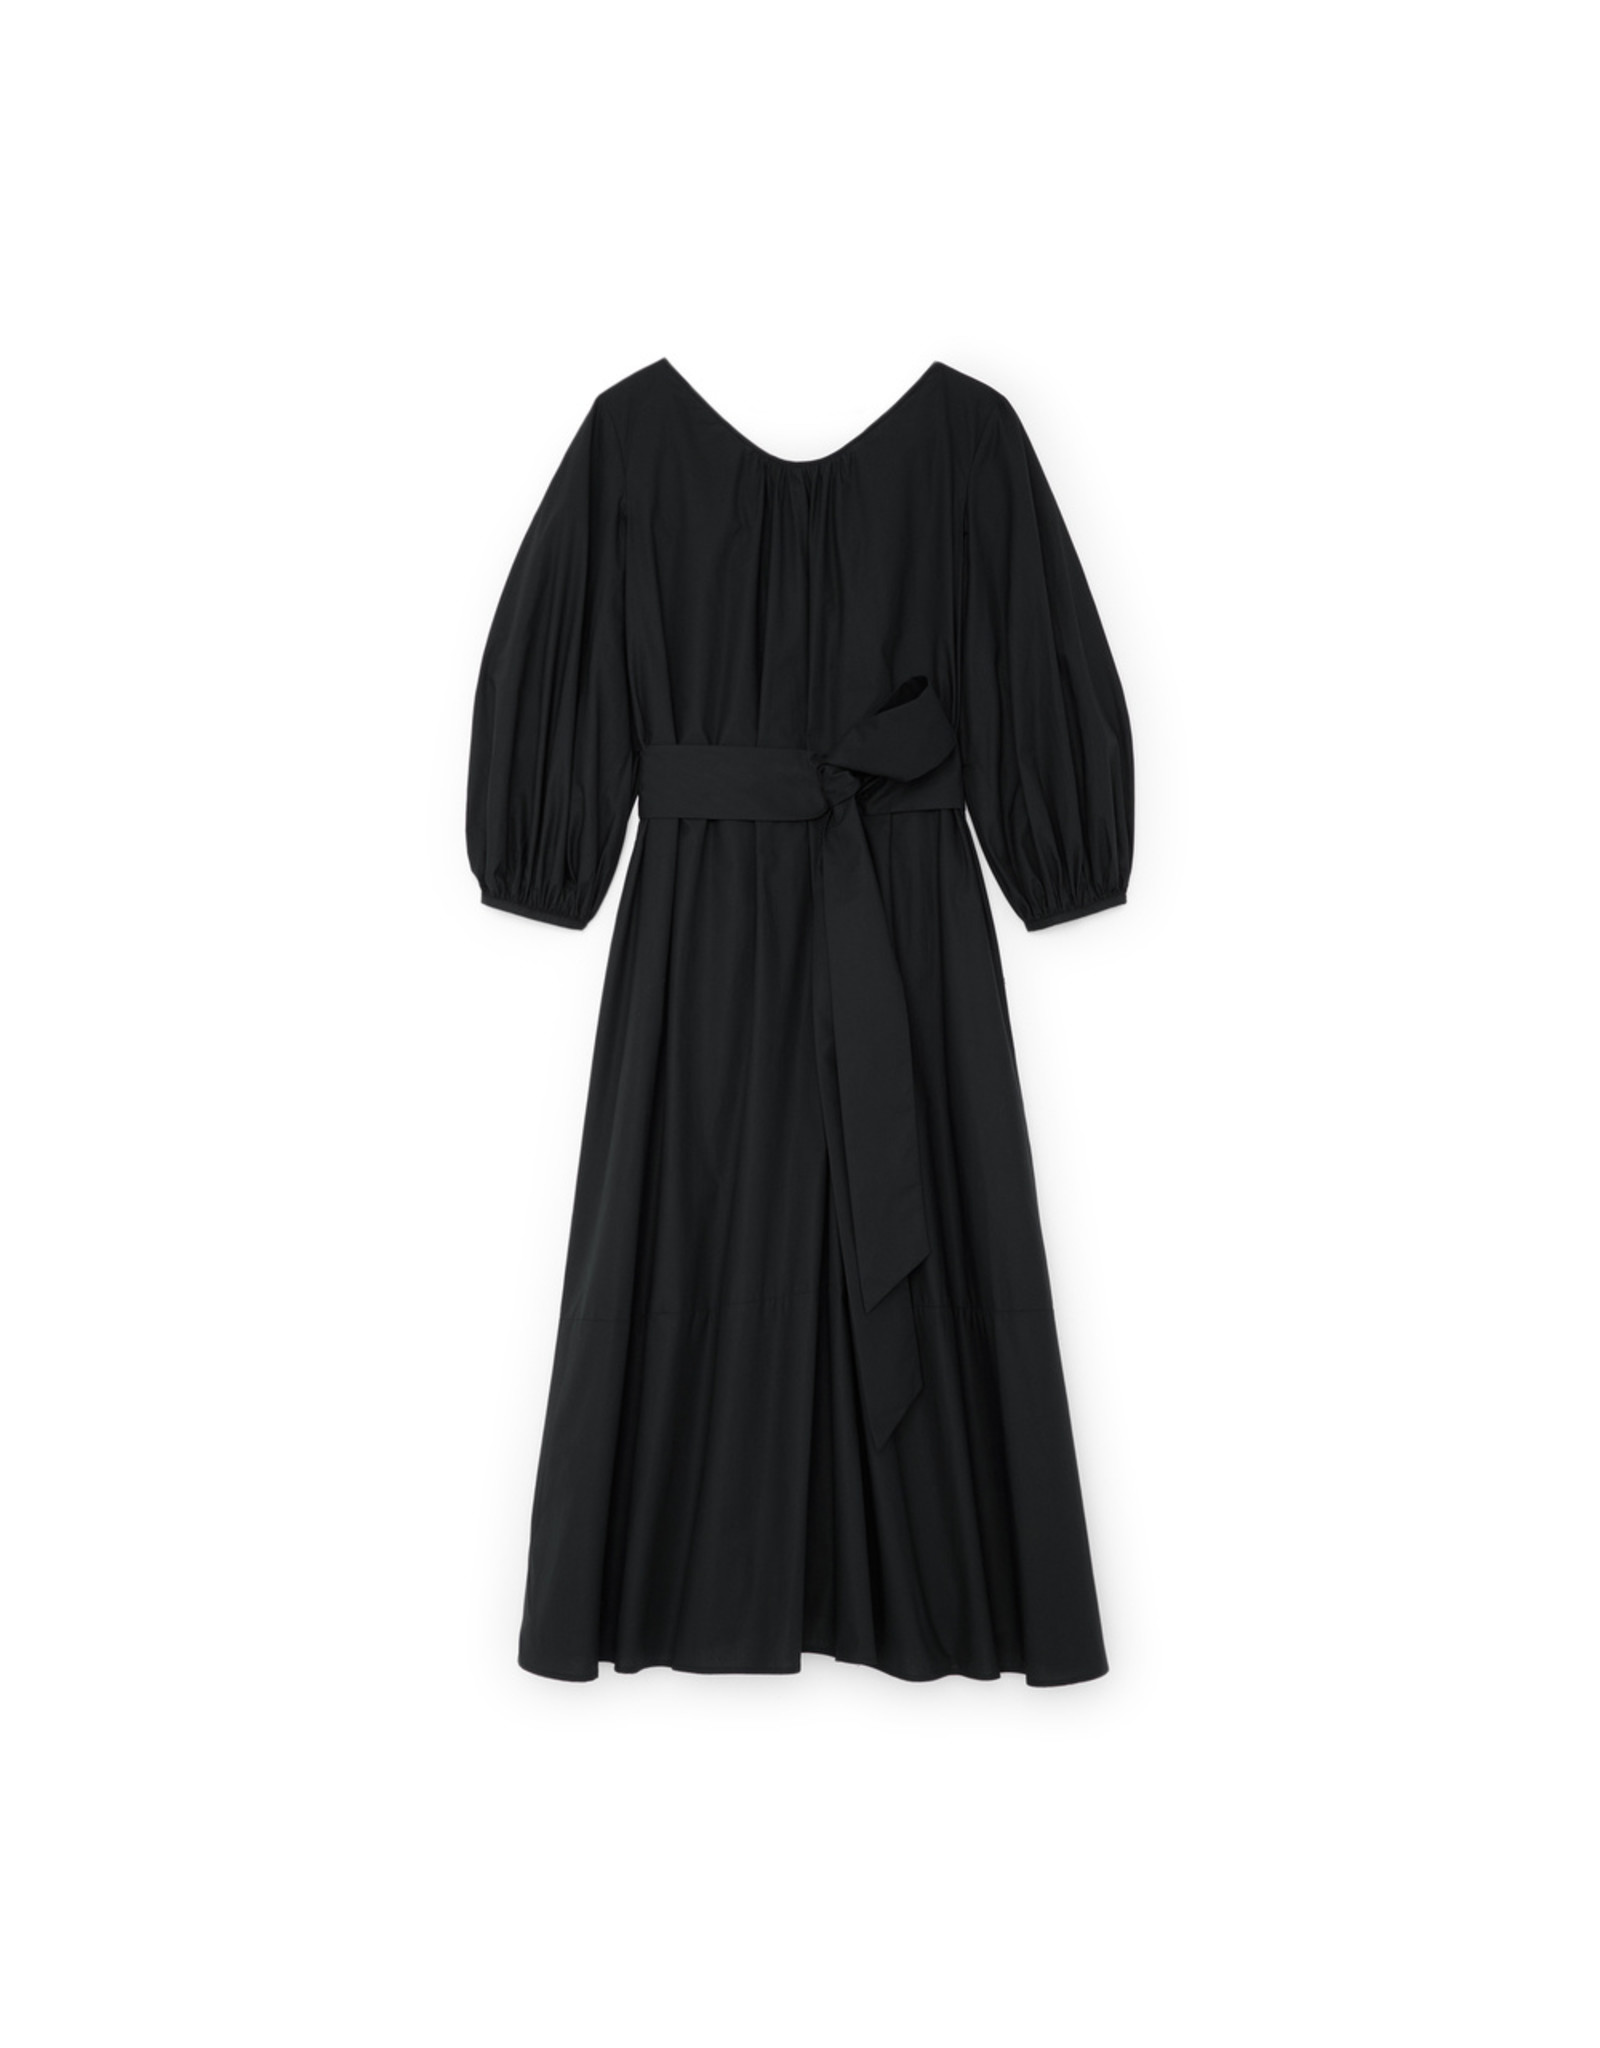 G. Label Amagansett Maxi Dress (Color: Black, Size: S)